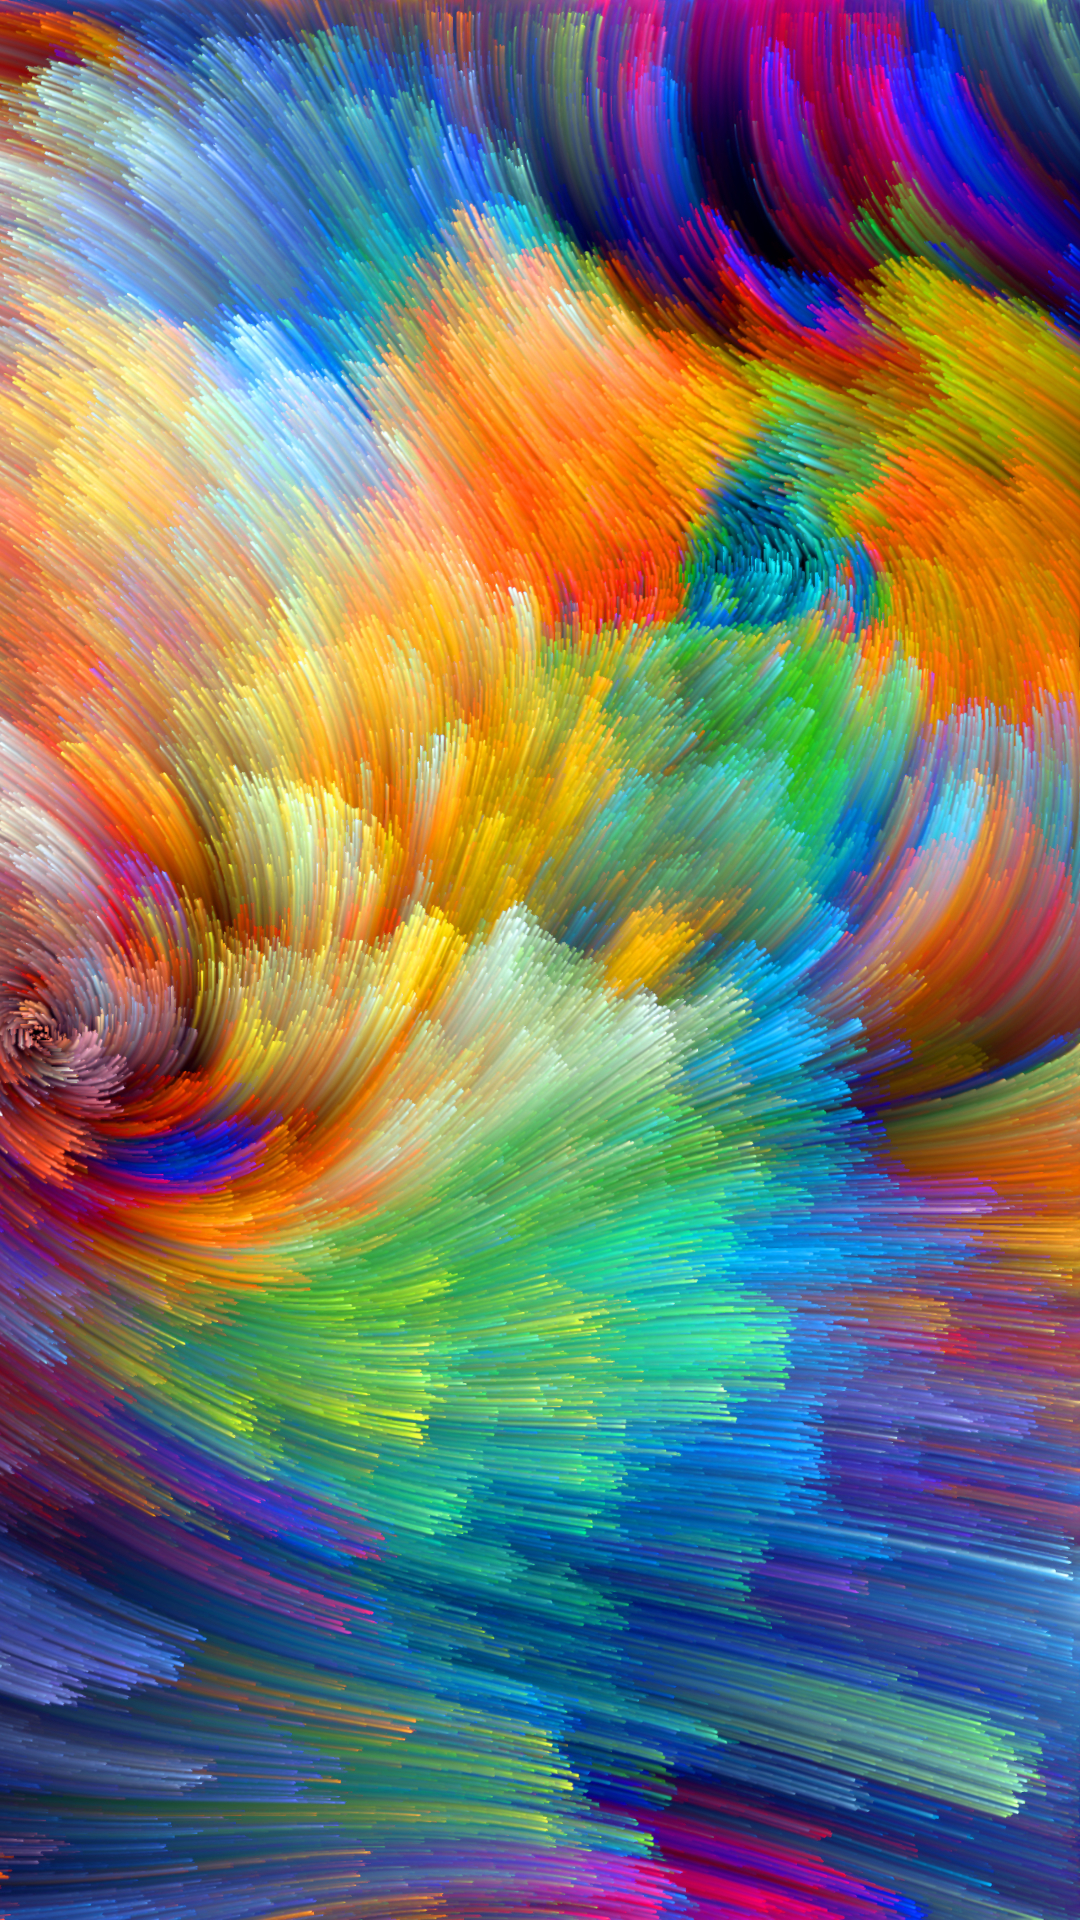 AbstractColors 1080x1920 Wallpaper ID 656625   Mobile Abyss 1080x1920